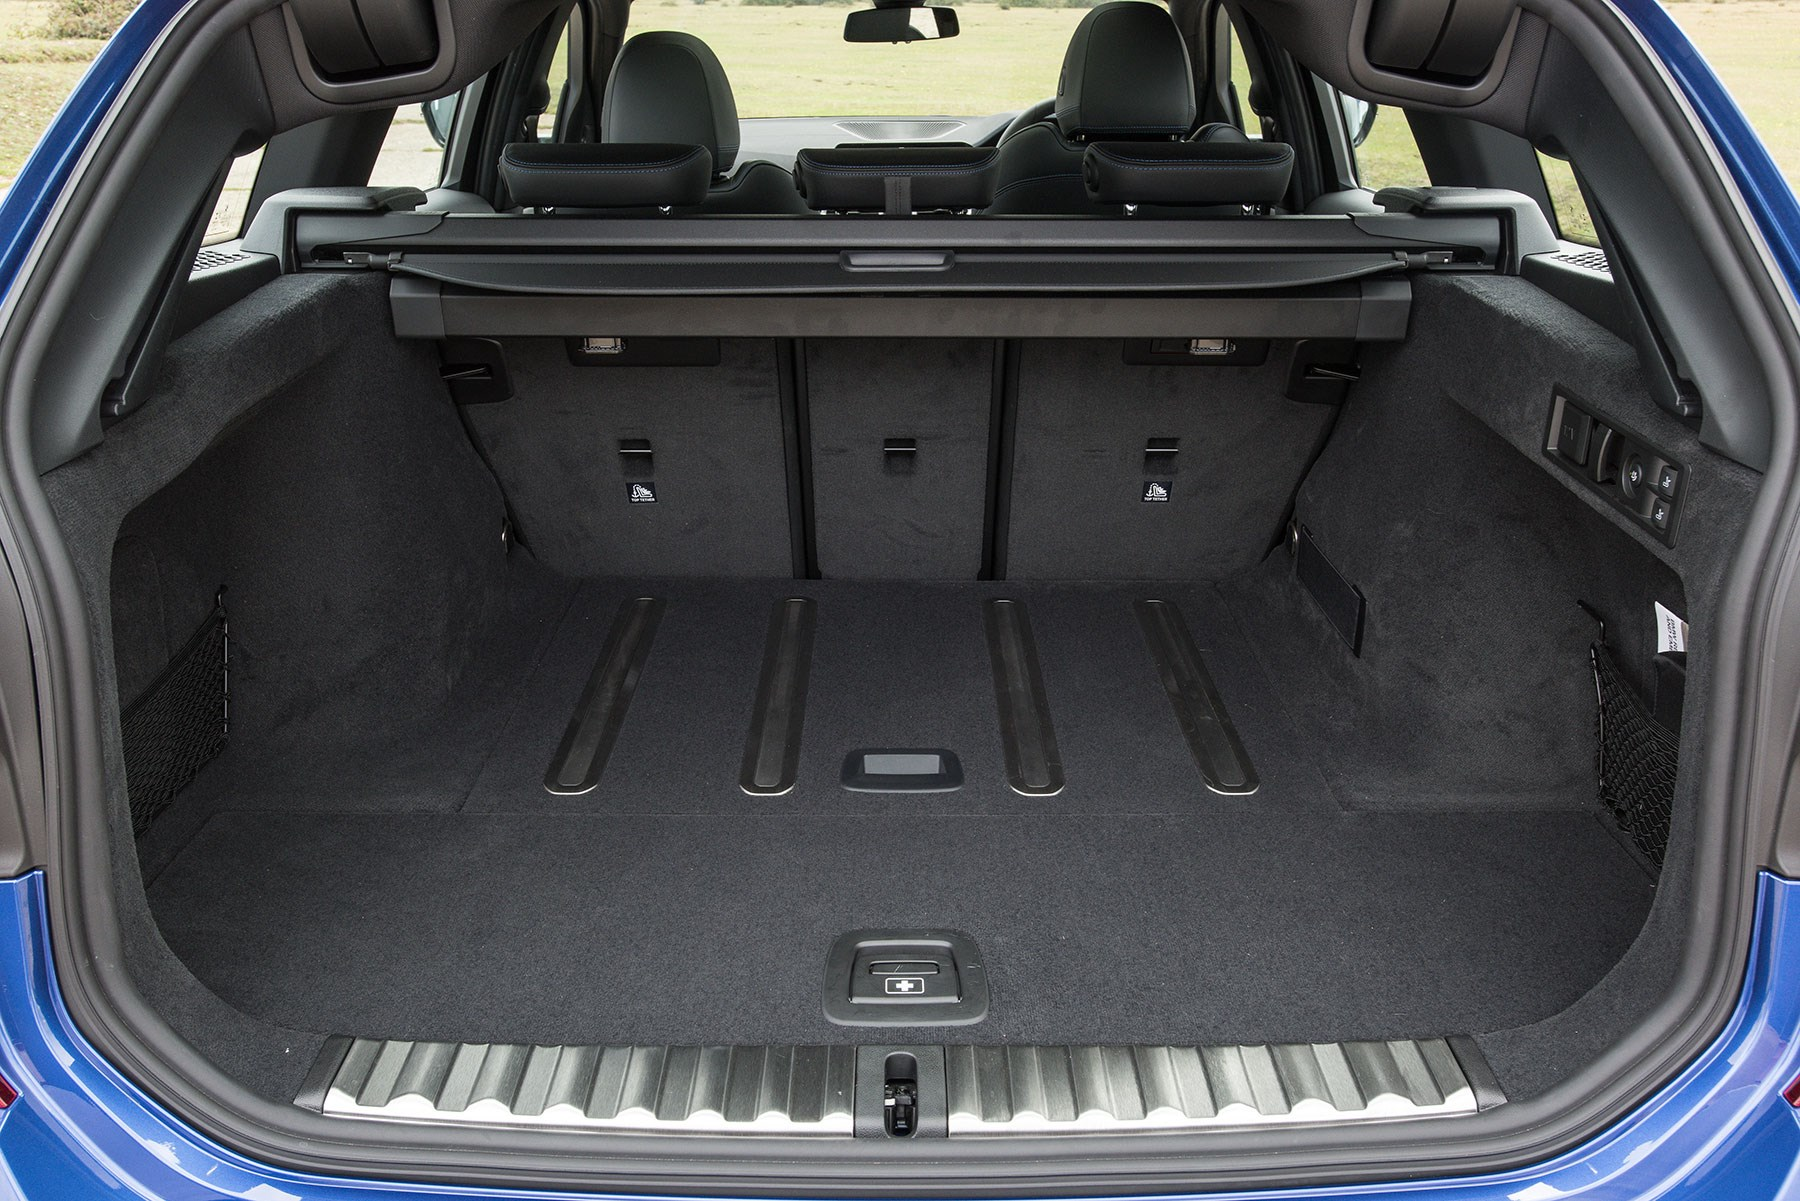 New BMW 3-series Touring boot space: 500 litres with rear seats up, clever active grippy rubber strips to hold luggage in place